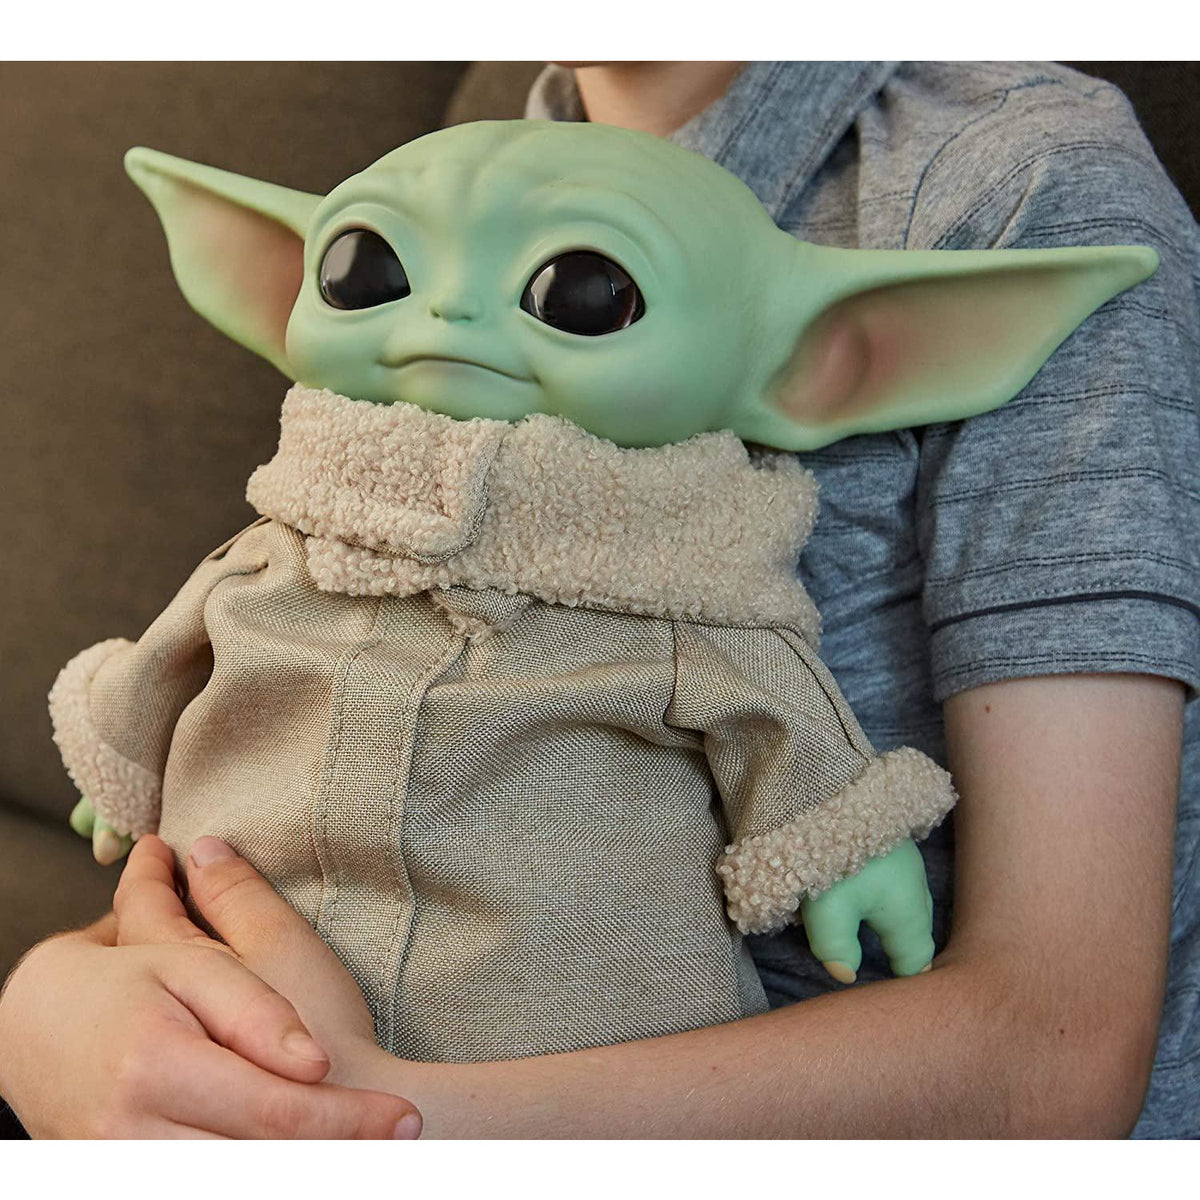 STAR WARS: THE MANDALORIAN - THE CHILD - 11-INCH PLUSH - BABY YODA